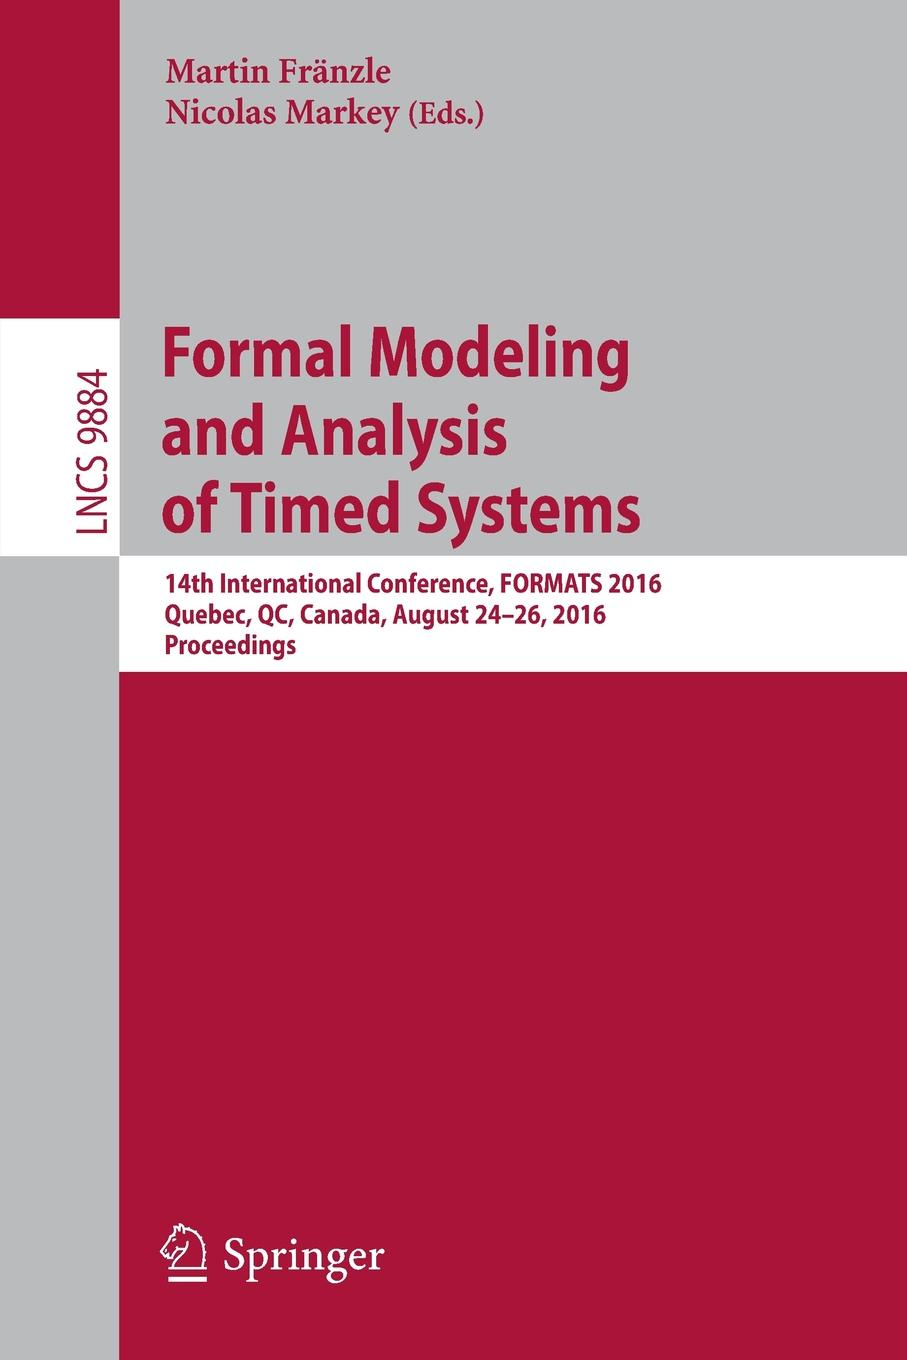 Formal Modeling and Analysis of Timed Systems. 14th International Conference, FORMATS 2016, Quebec, QC, Canada, August 24-26, 2016, Proceedings modeling and analysis of manufacturing systems